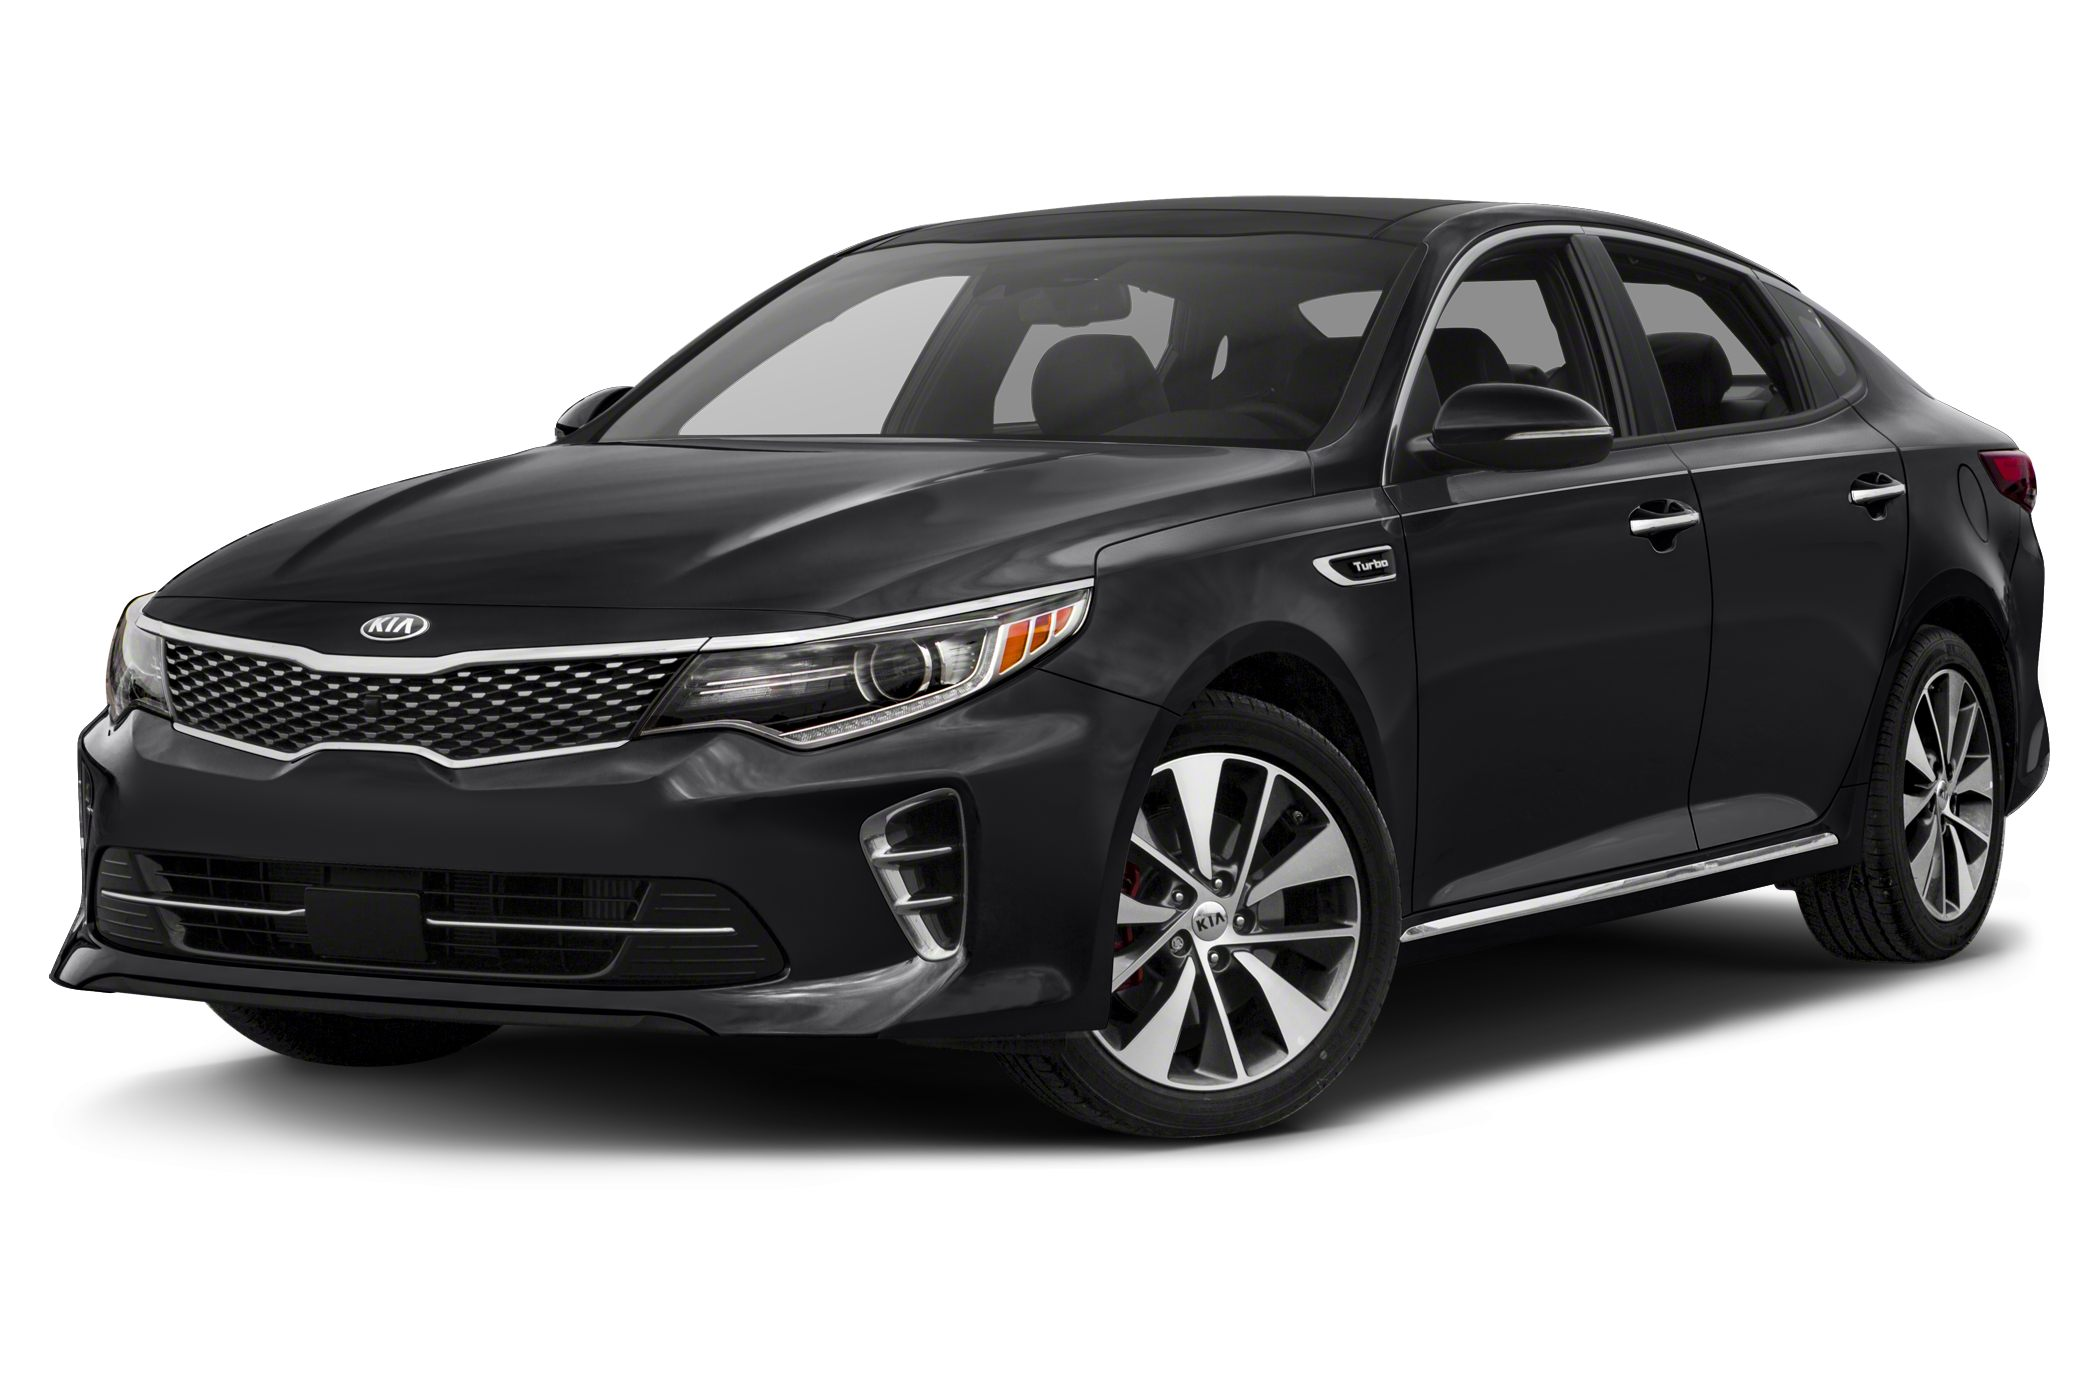 2017 Kia Optima SX Turbo Miles 8Color Black Stock K16502 VIN 5XXGW4L28HG142608